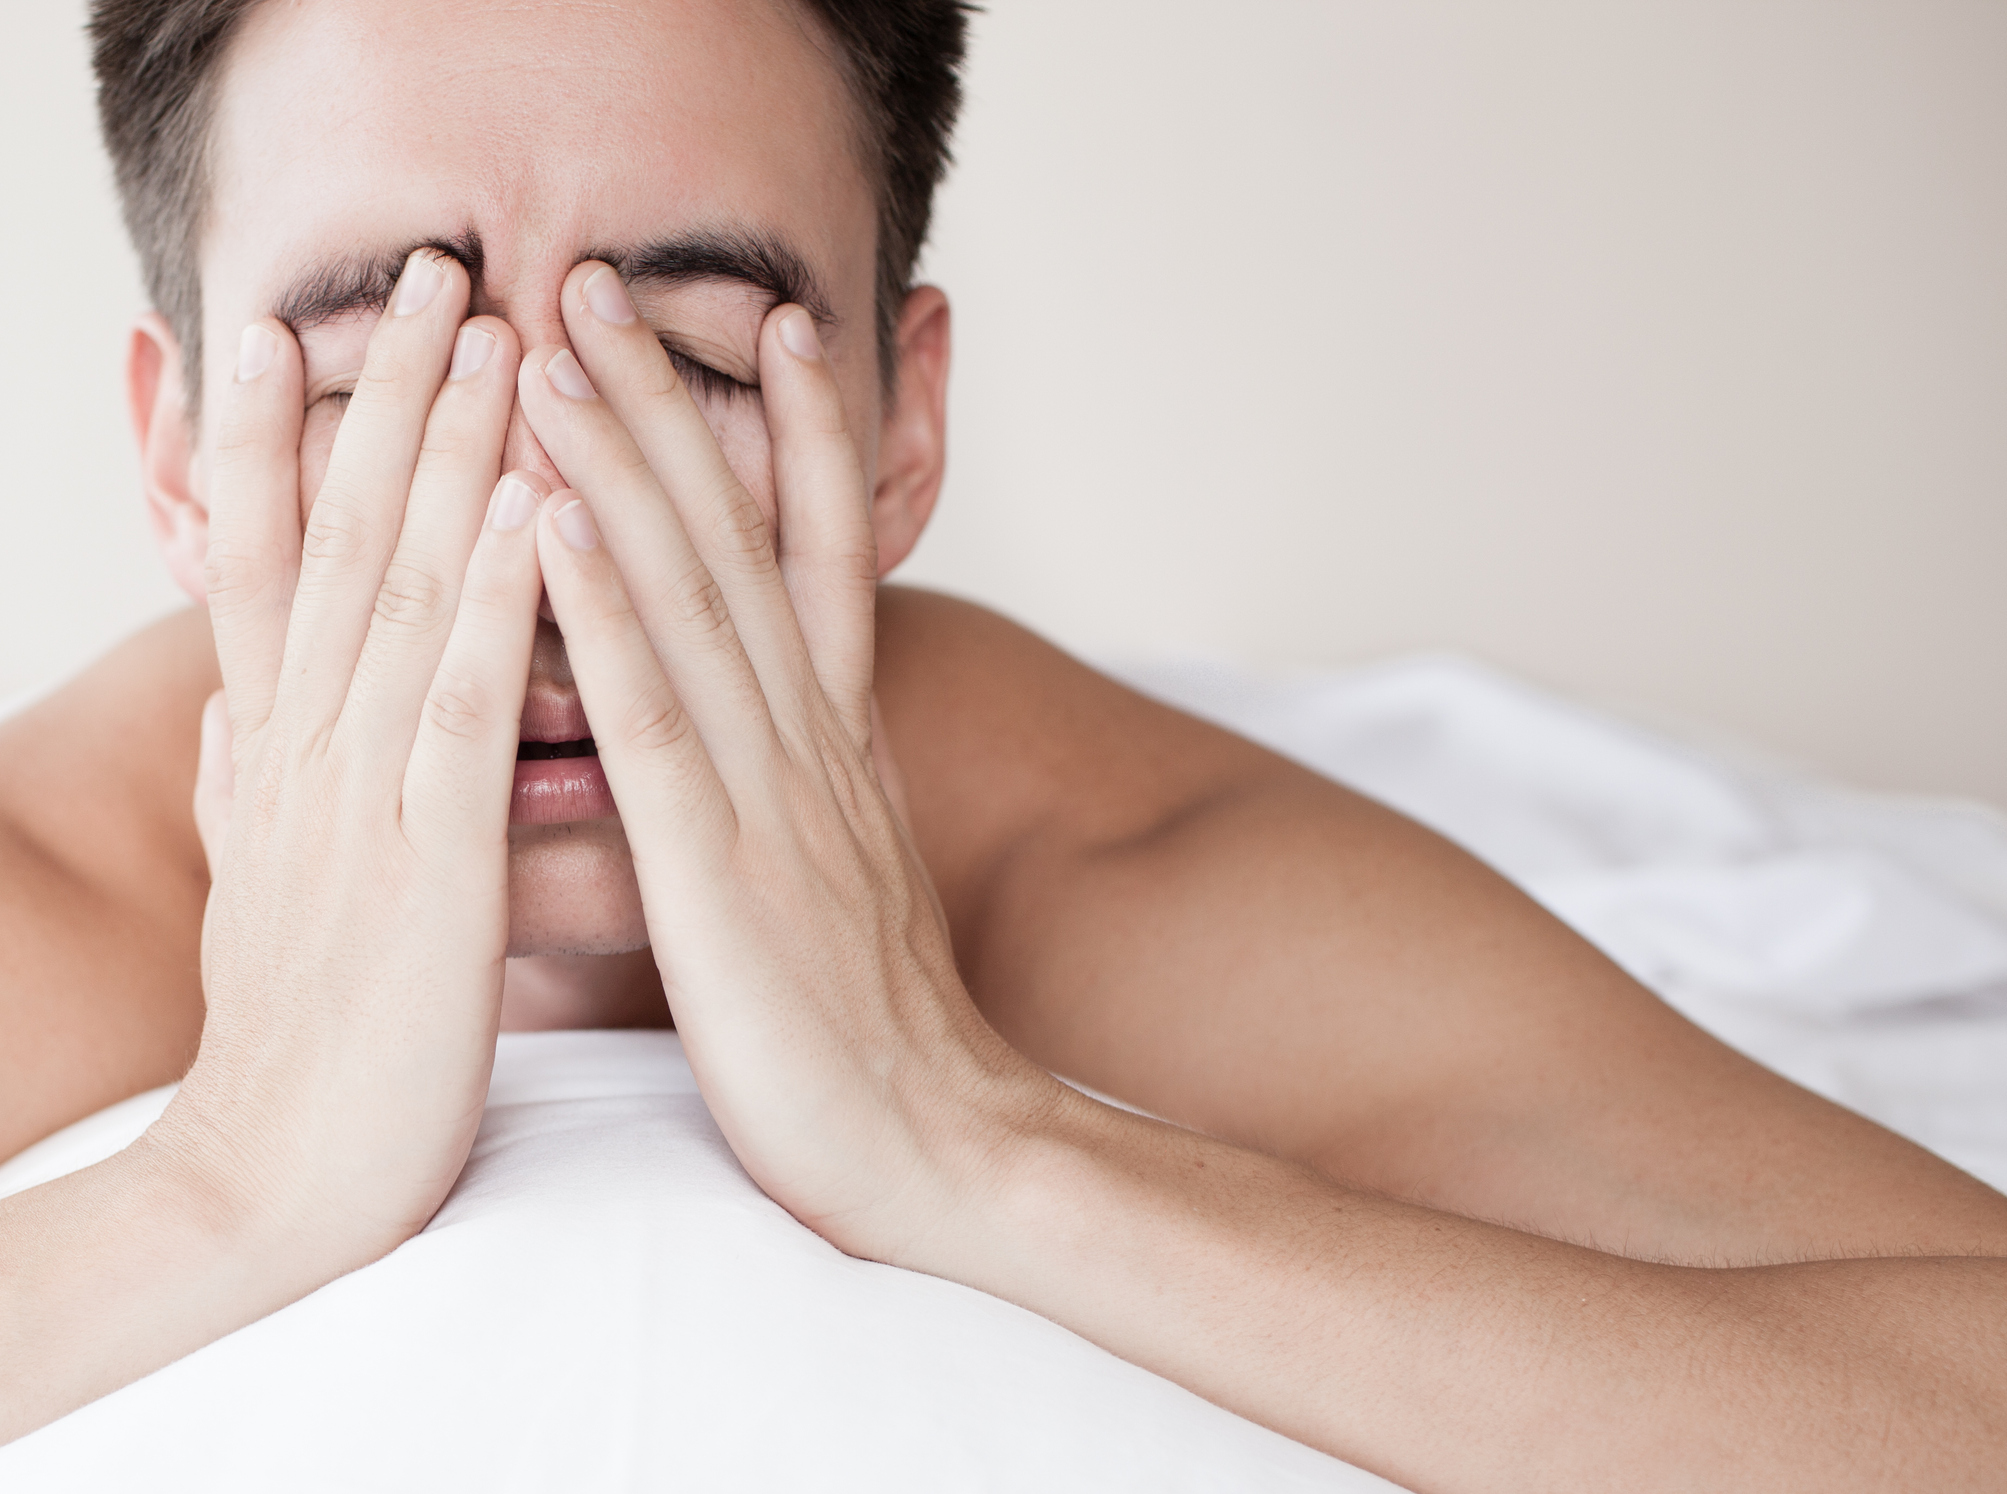 Treating sleep apnea helps both your mind and body